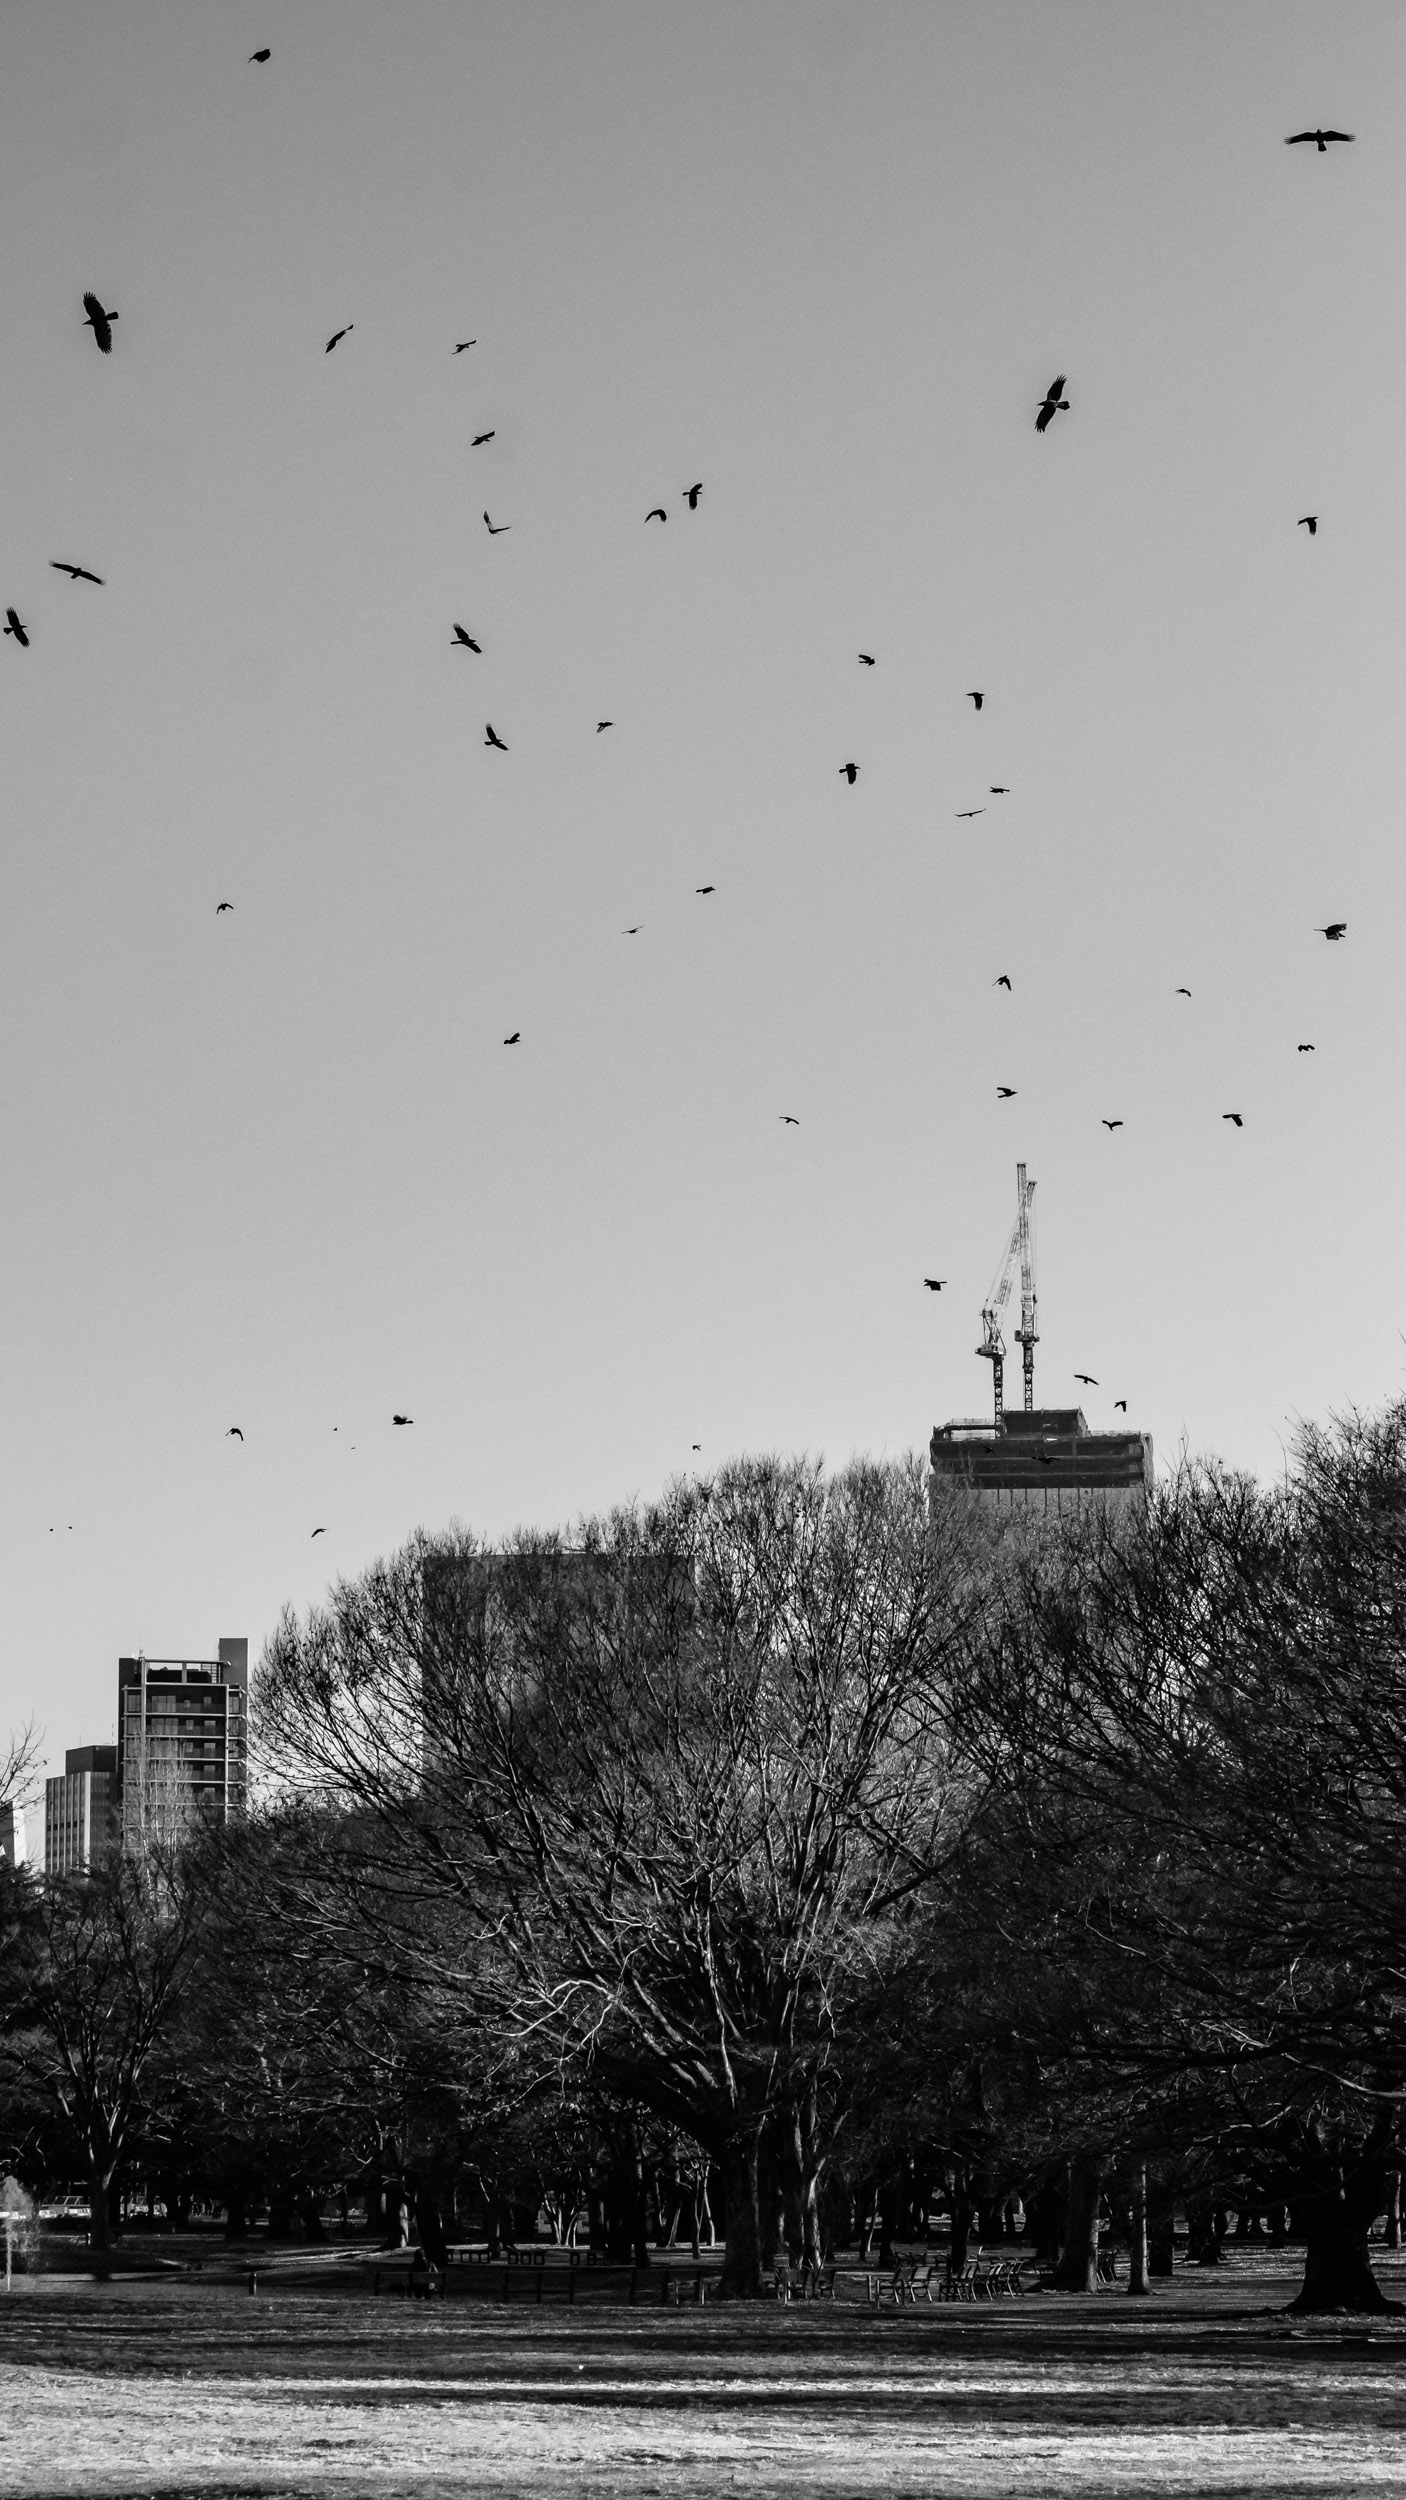 You'll often see huge flocks of crows in Yoyogi Park